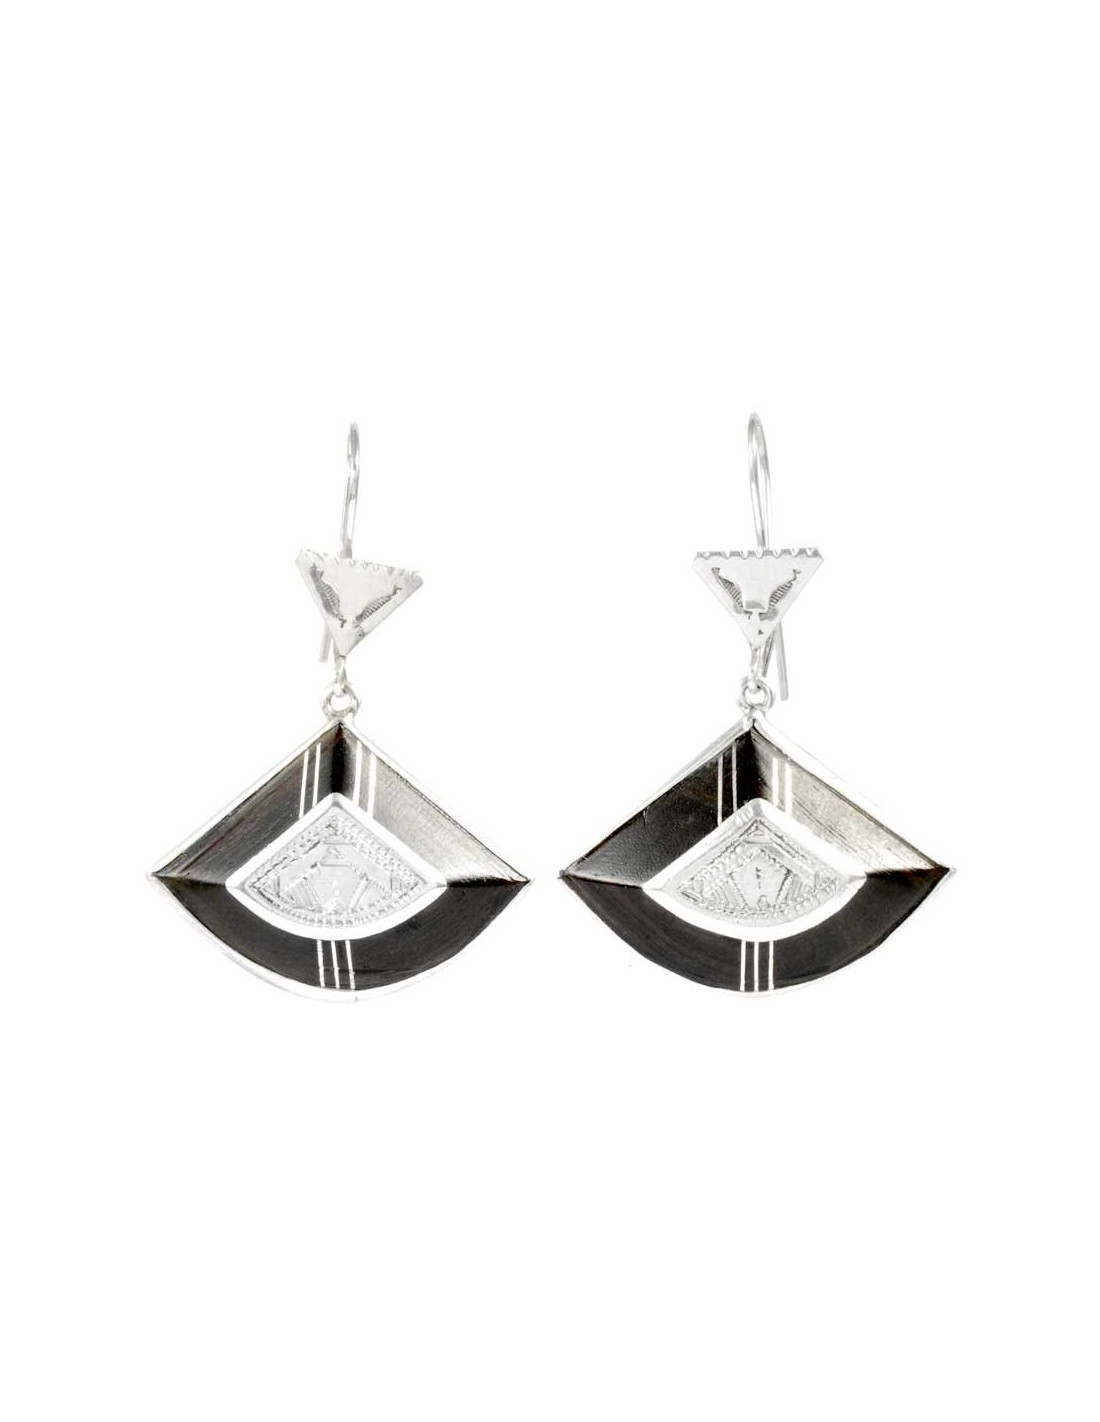 boucles d 39 oreilles touareg en argent et b ne boutique nirvana. Black Bedroom Furniture Sets. Home Design Ideas